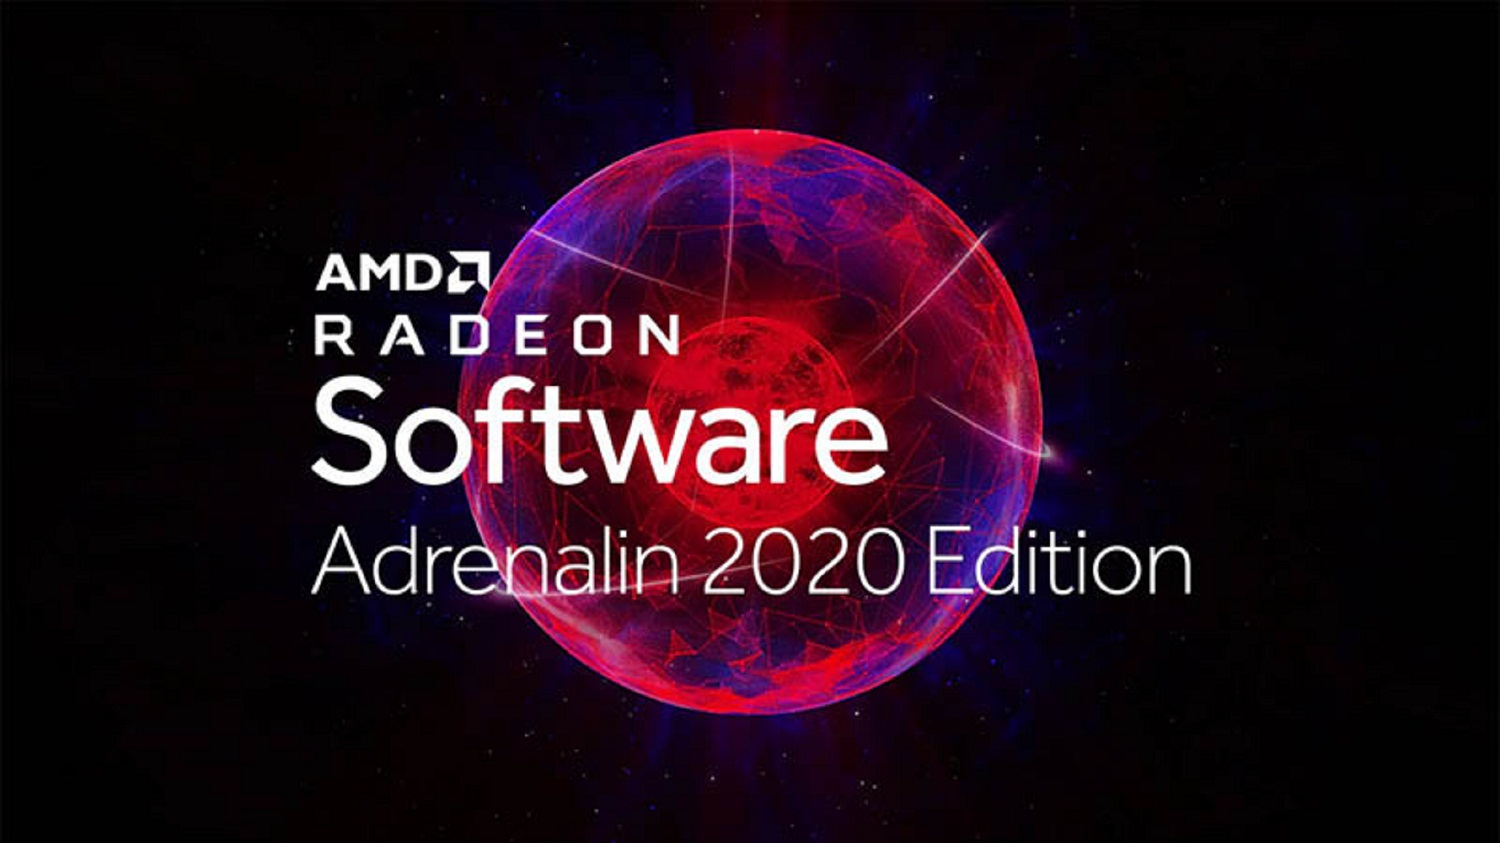 New Unified Update For Amd Radeon Adrenalin 20 4 1 Is Back With Major Fixes And Support For The Resident Evil Remake 3 Happy Gamer